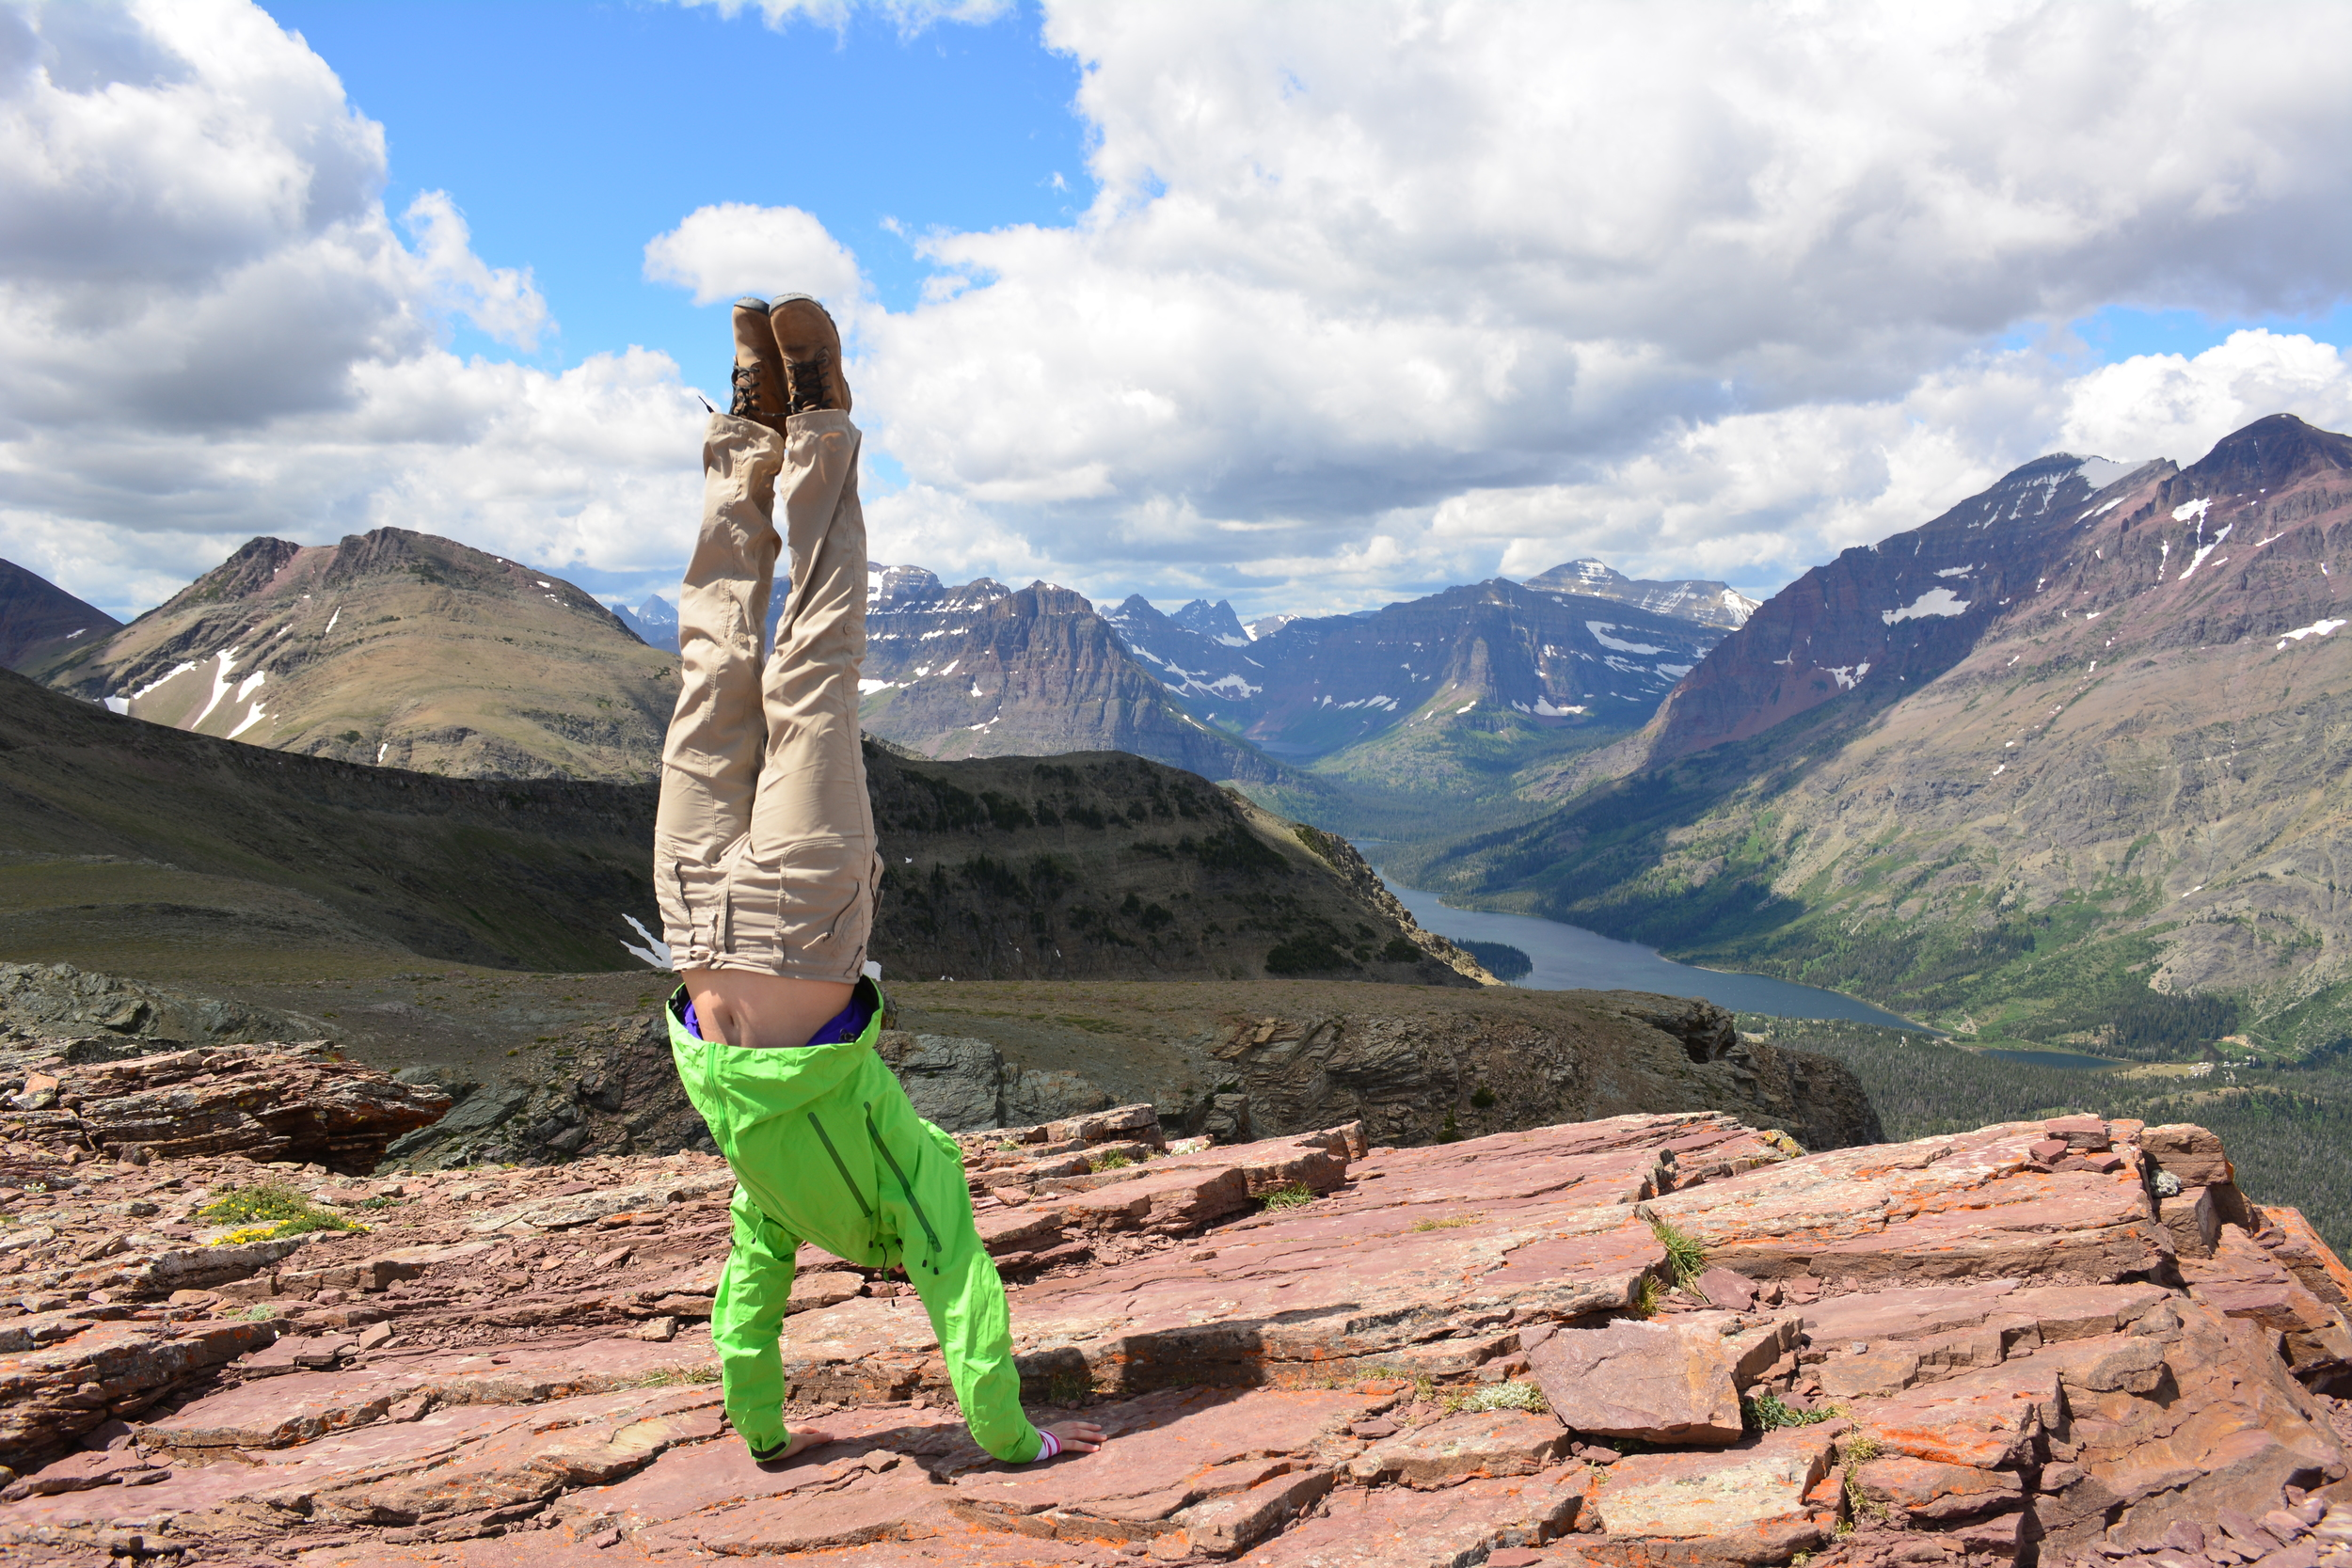 Handstands at the top of Scenic Point